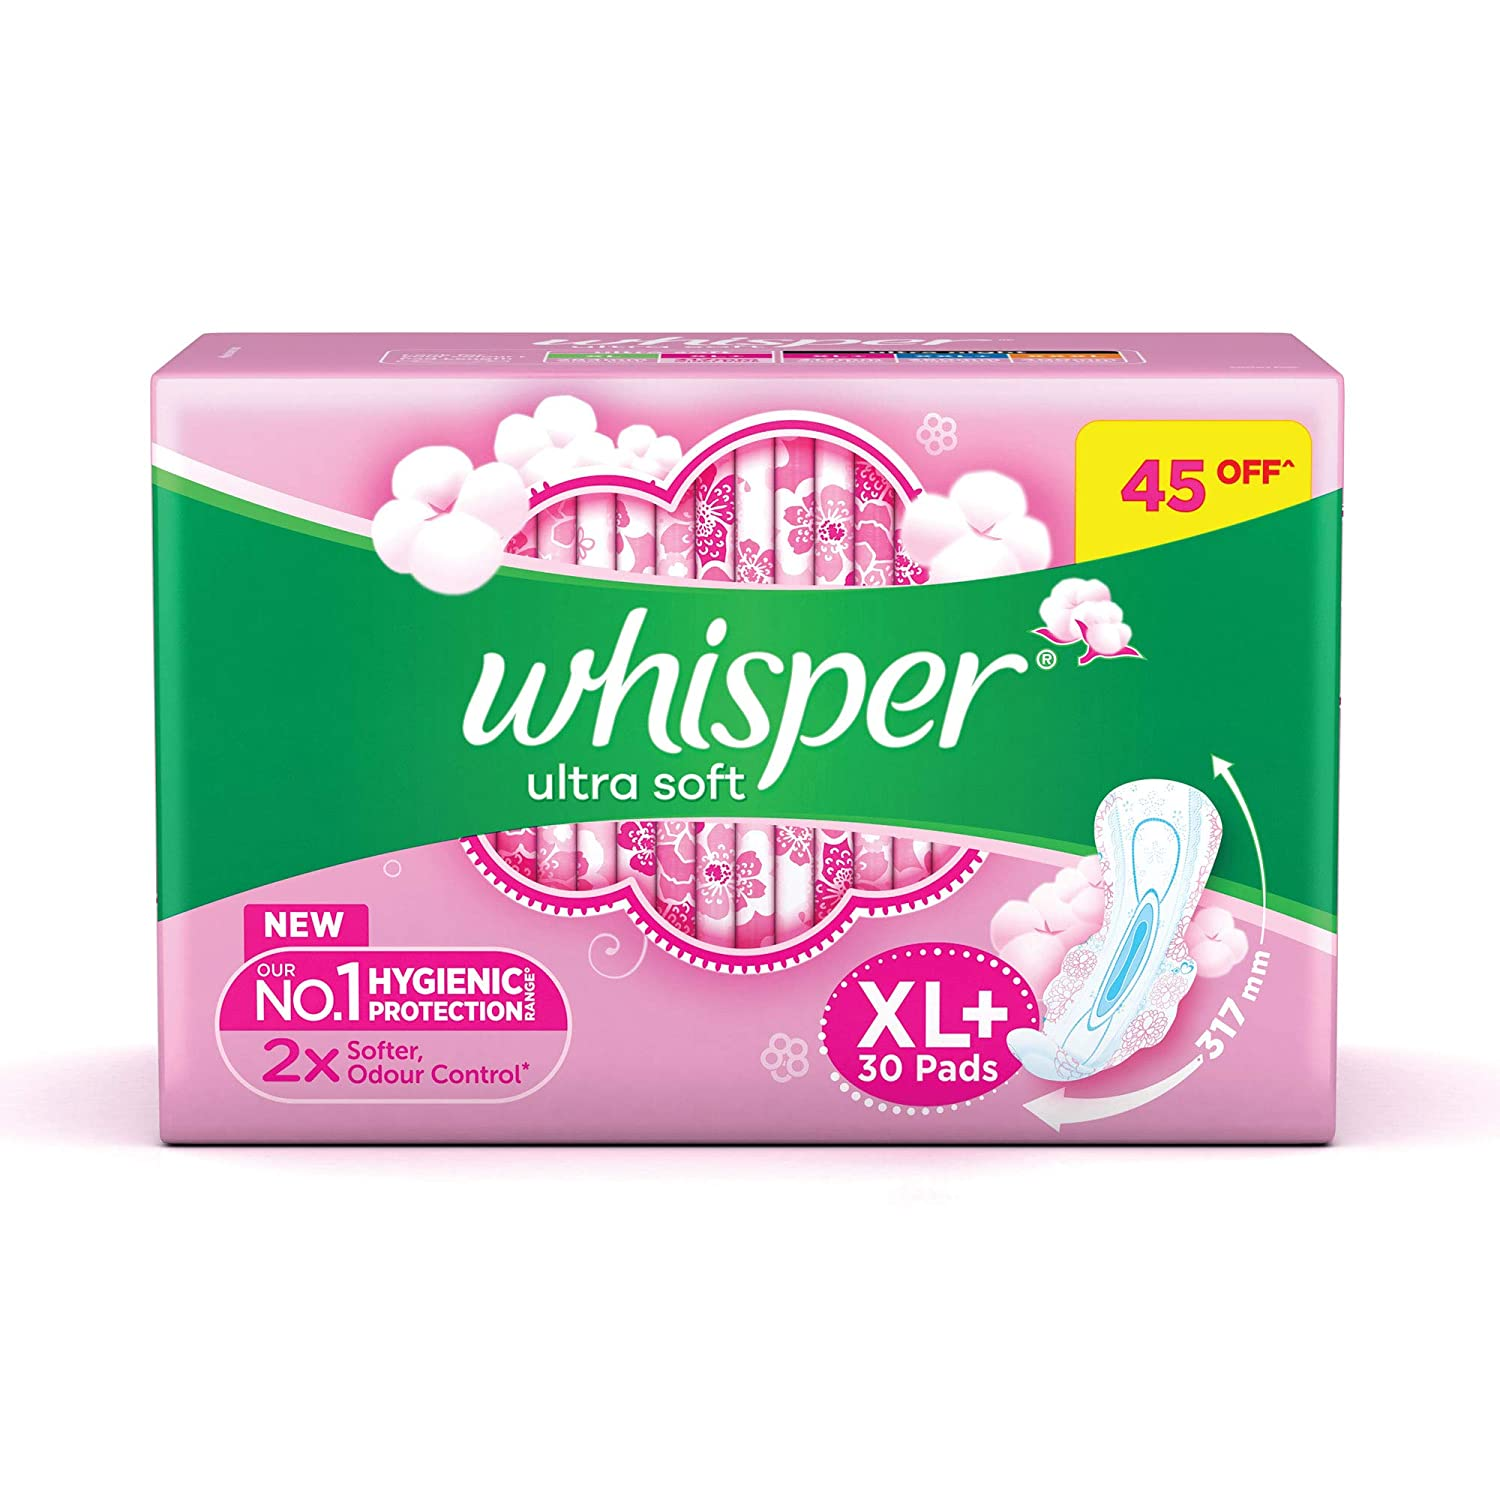 Whisper Ultra Soft Sanitary Pads for Women, XL+ 30 Napkins